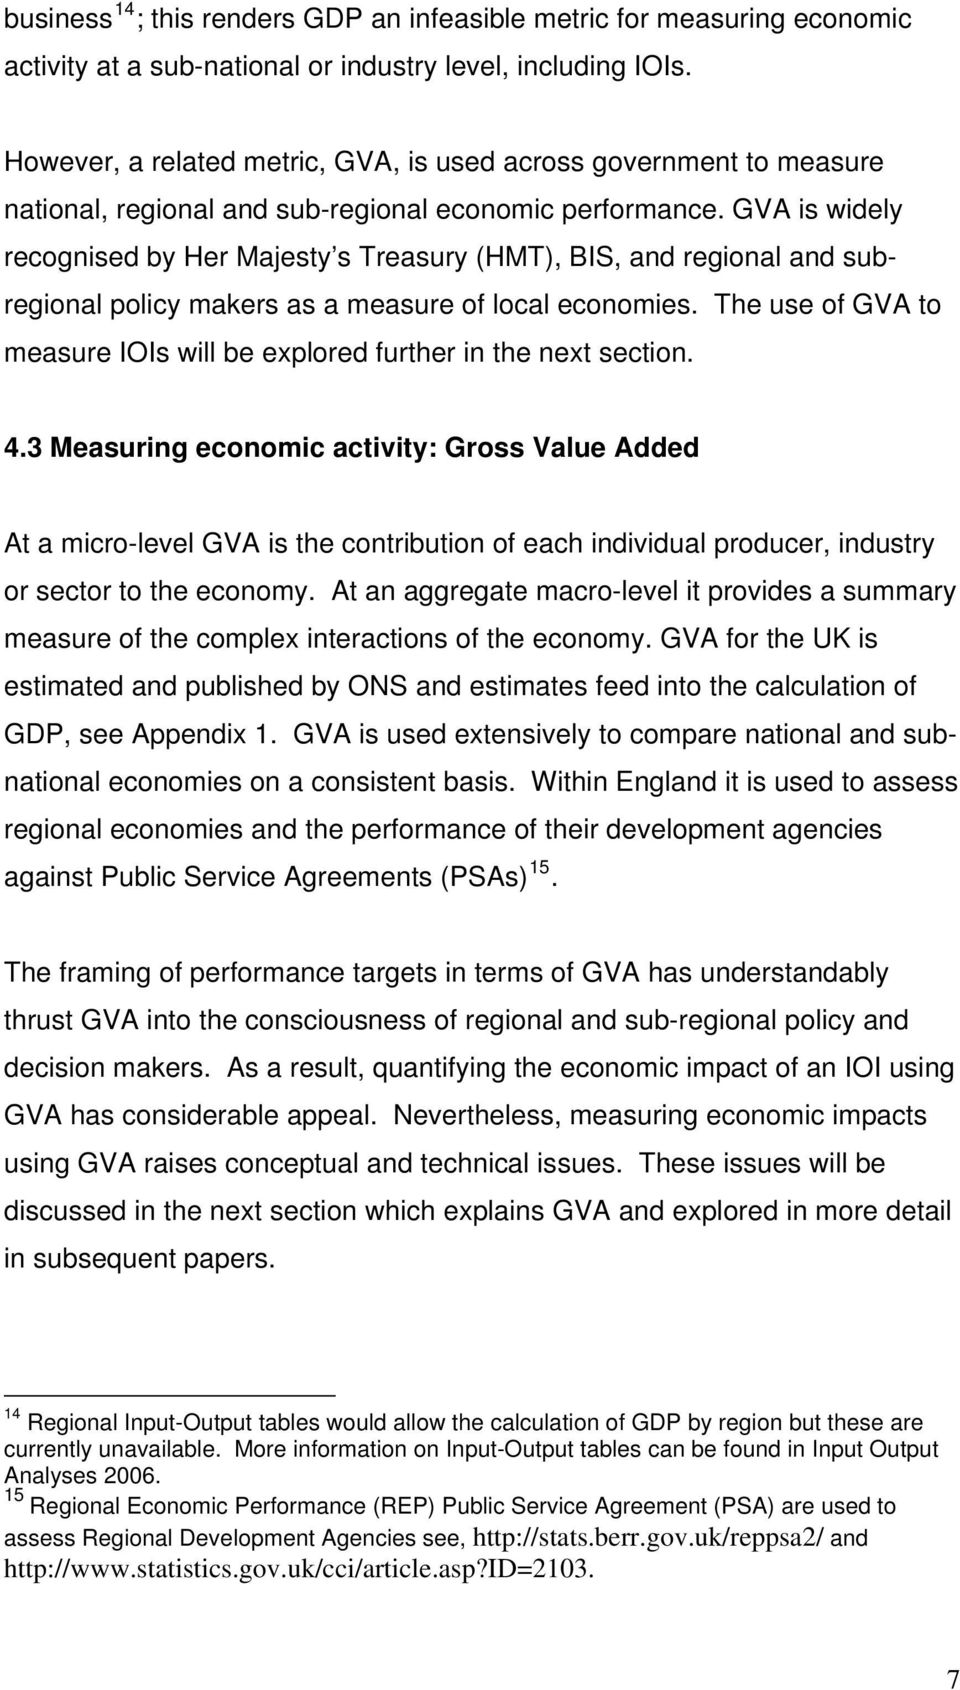 GVA is widely recognised by Her Majesty s Treasury (HMT), BIS, and regional and subregional policy makers as a measure of local economies.